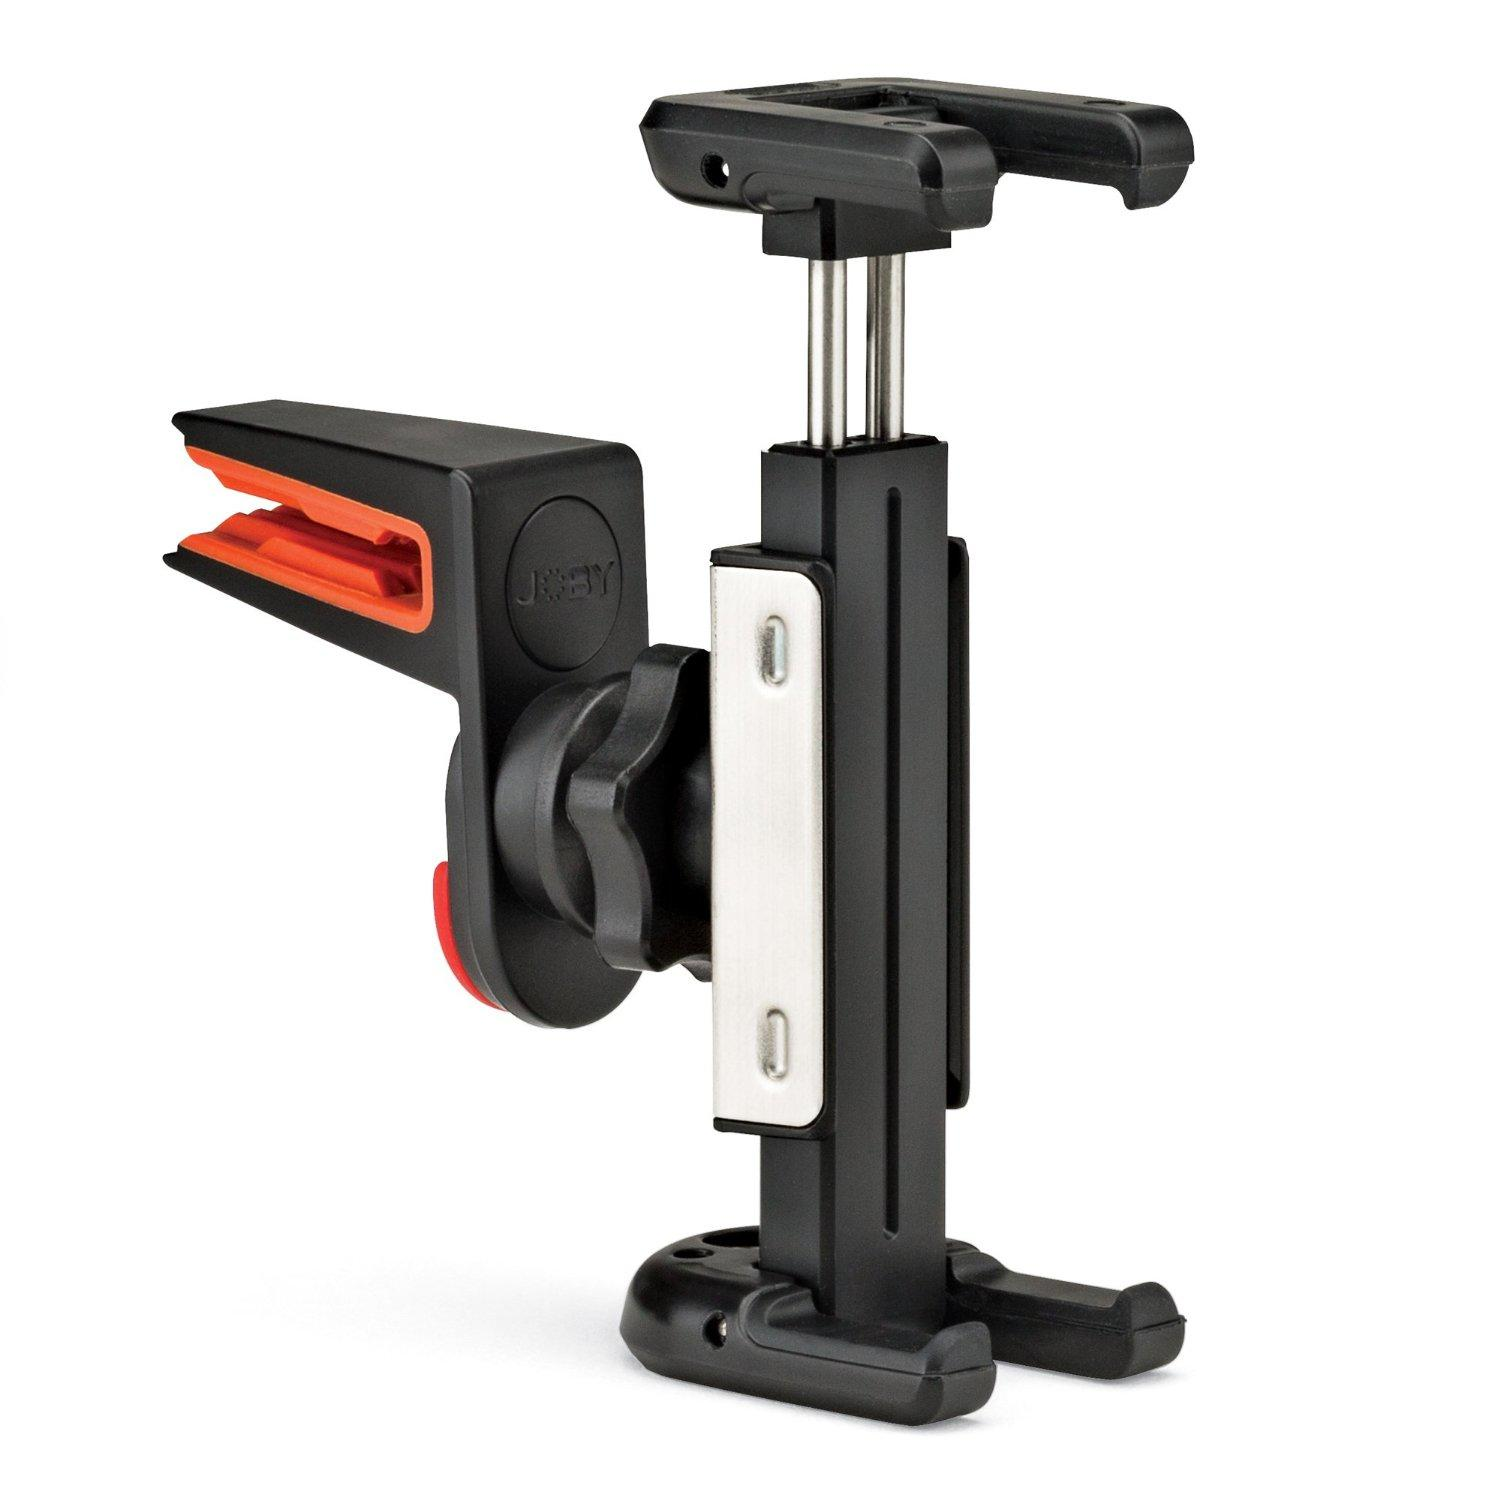 Joby GripTight Auto Vent Clip XL for Smartphones